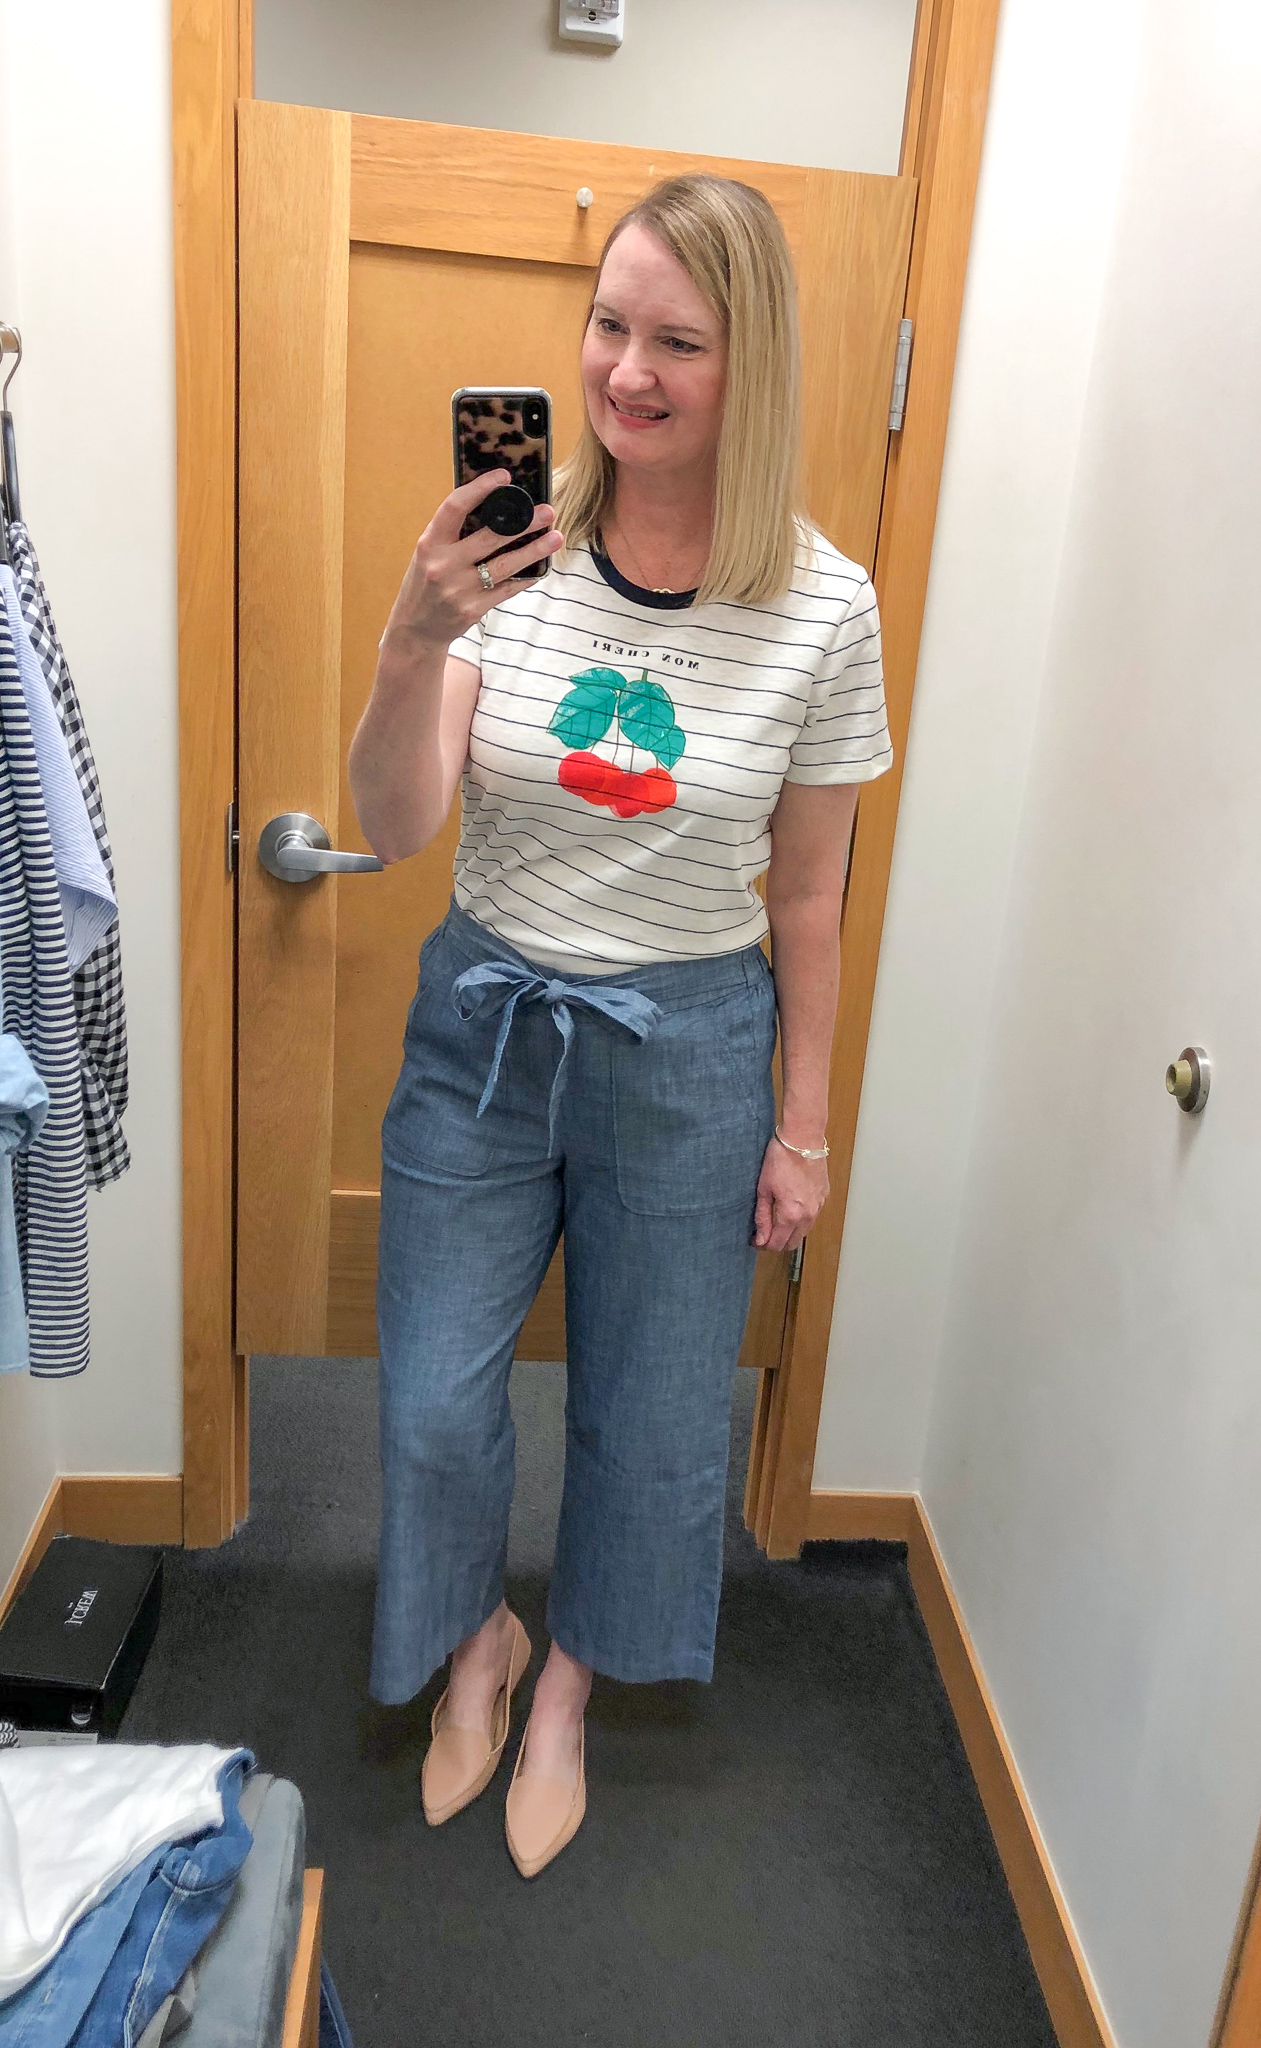 J Crew Factory Fitting Room Reviews March 2019 2